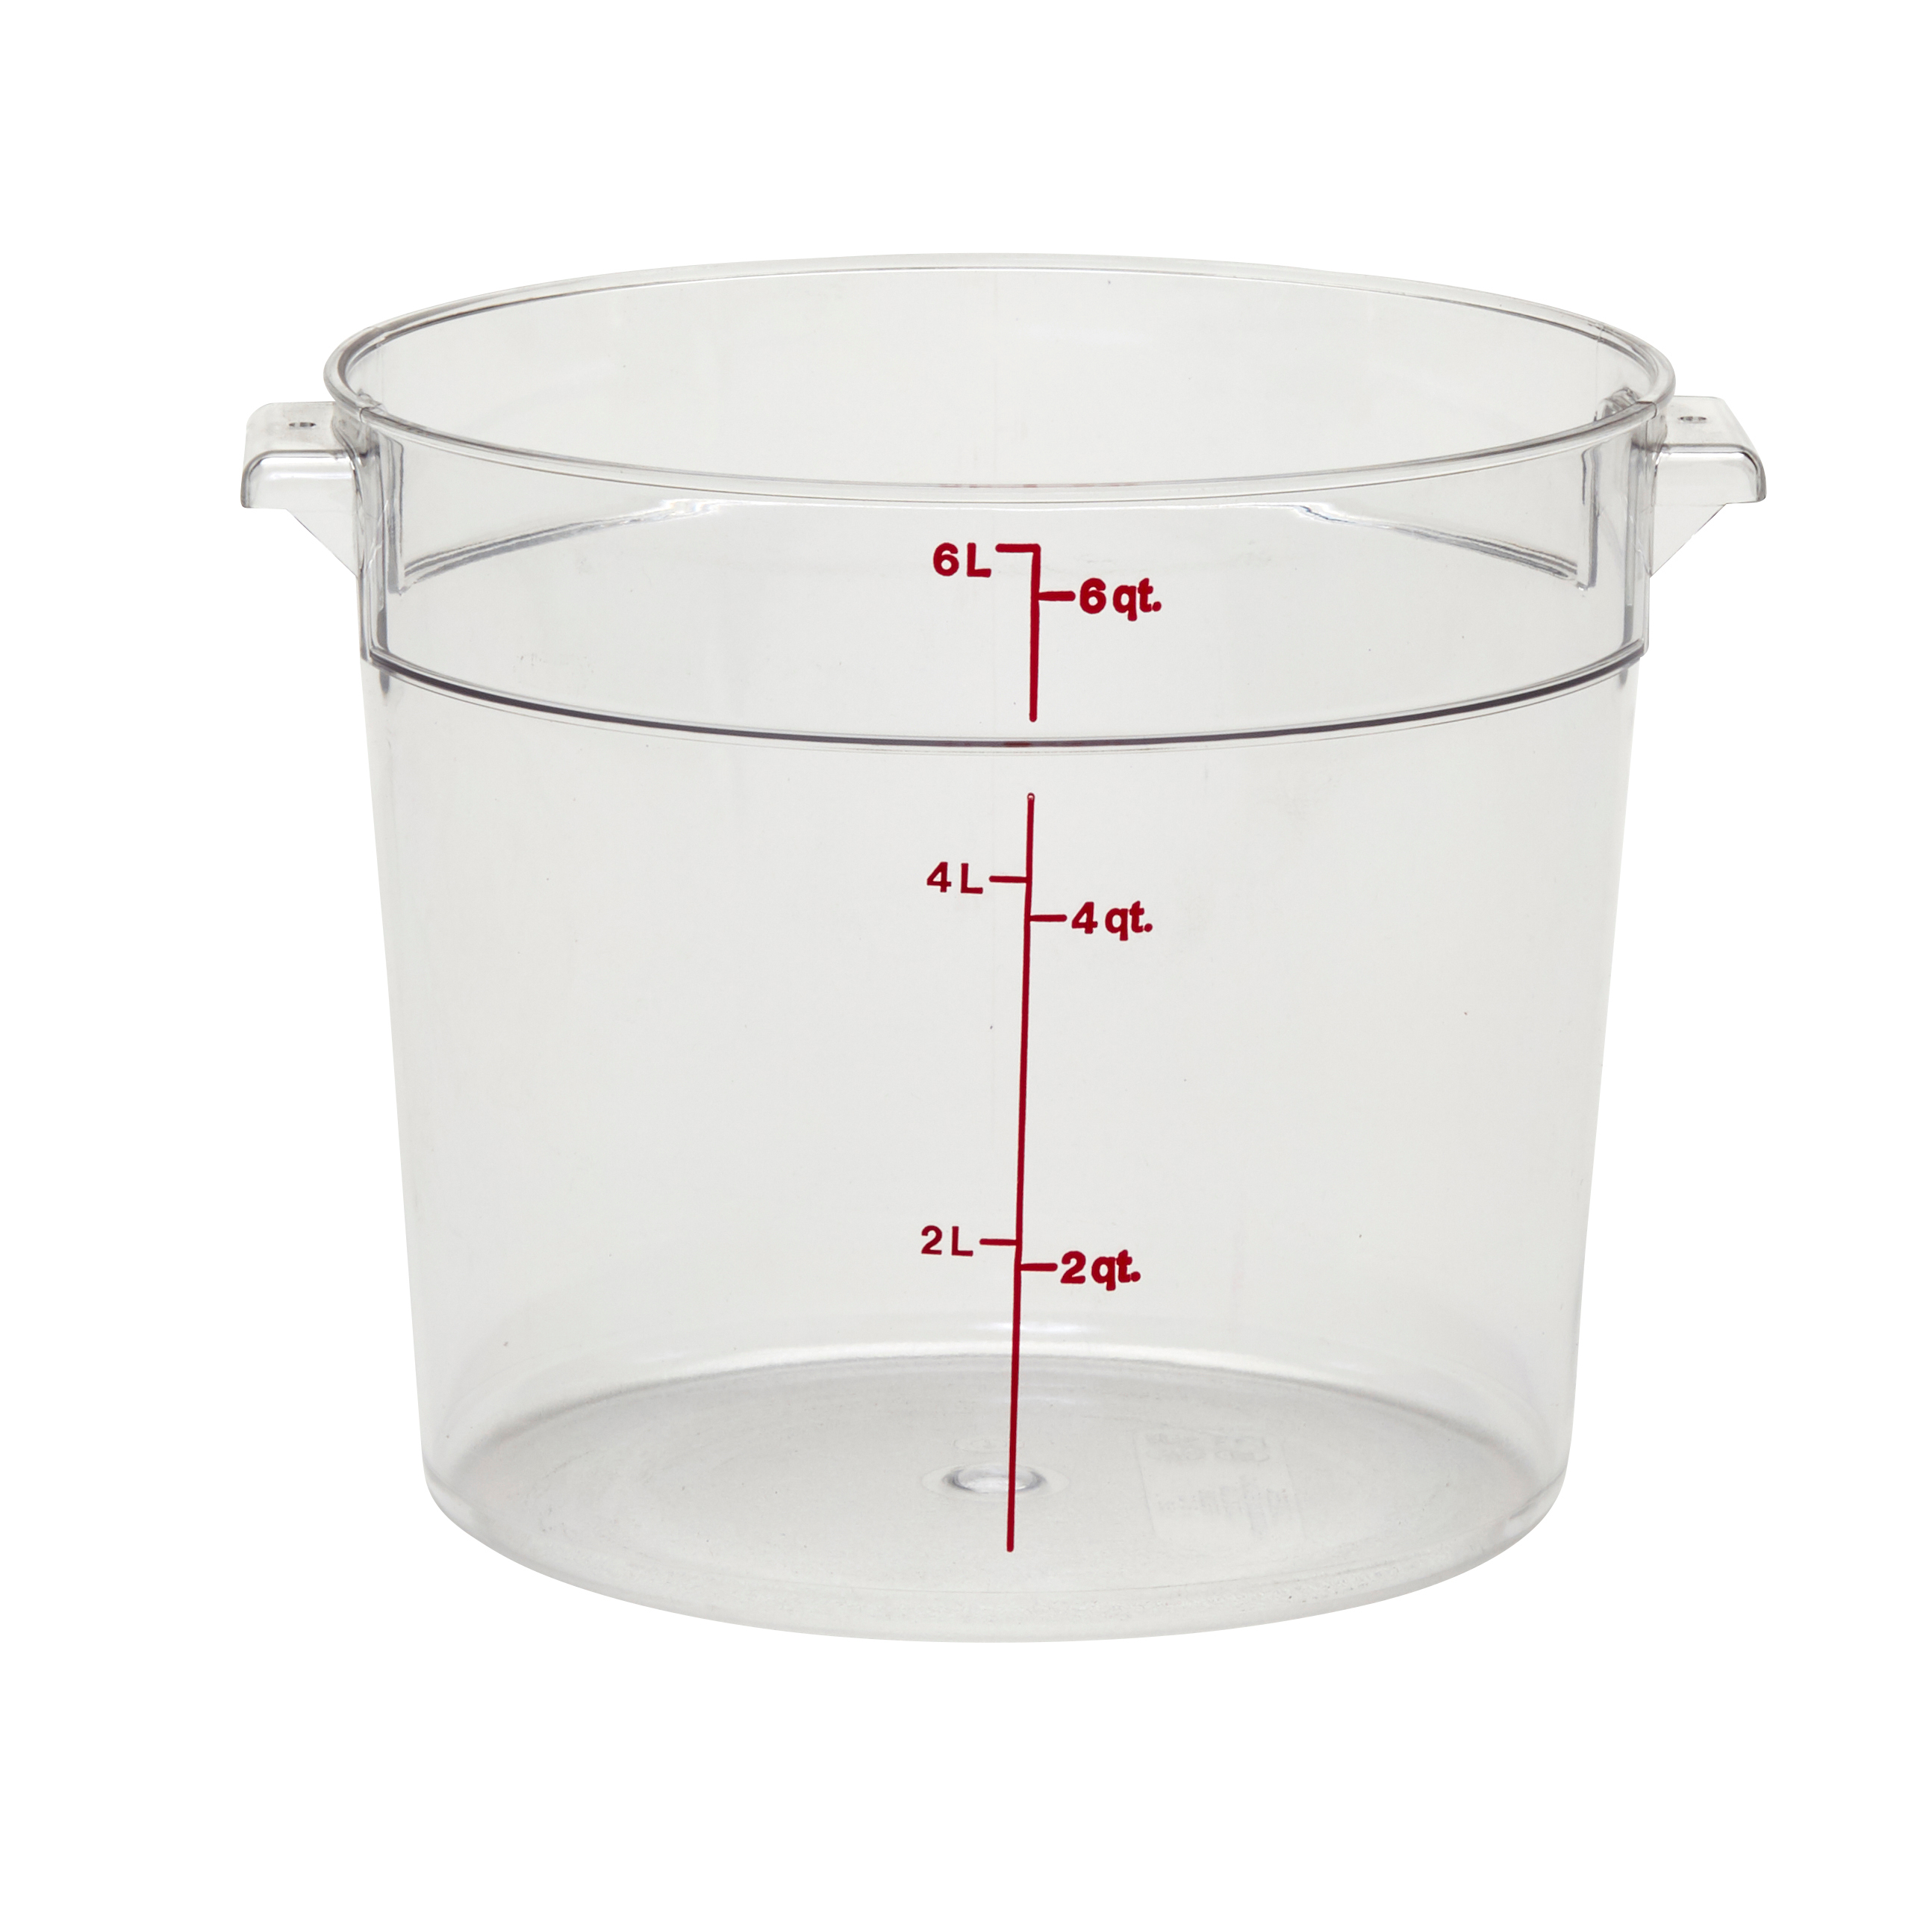 Cambro RFSCW6135 food/beverage storage container